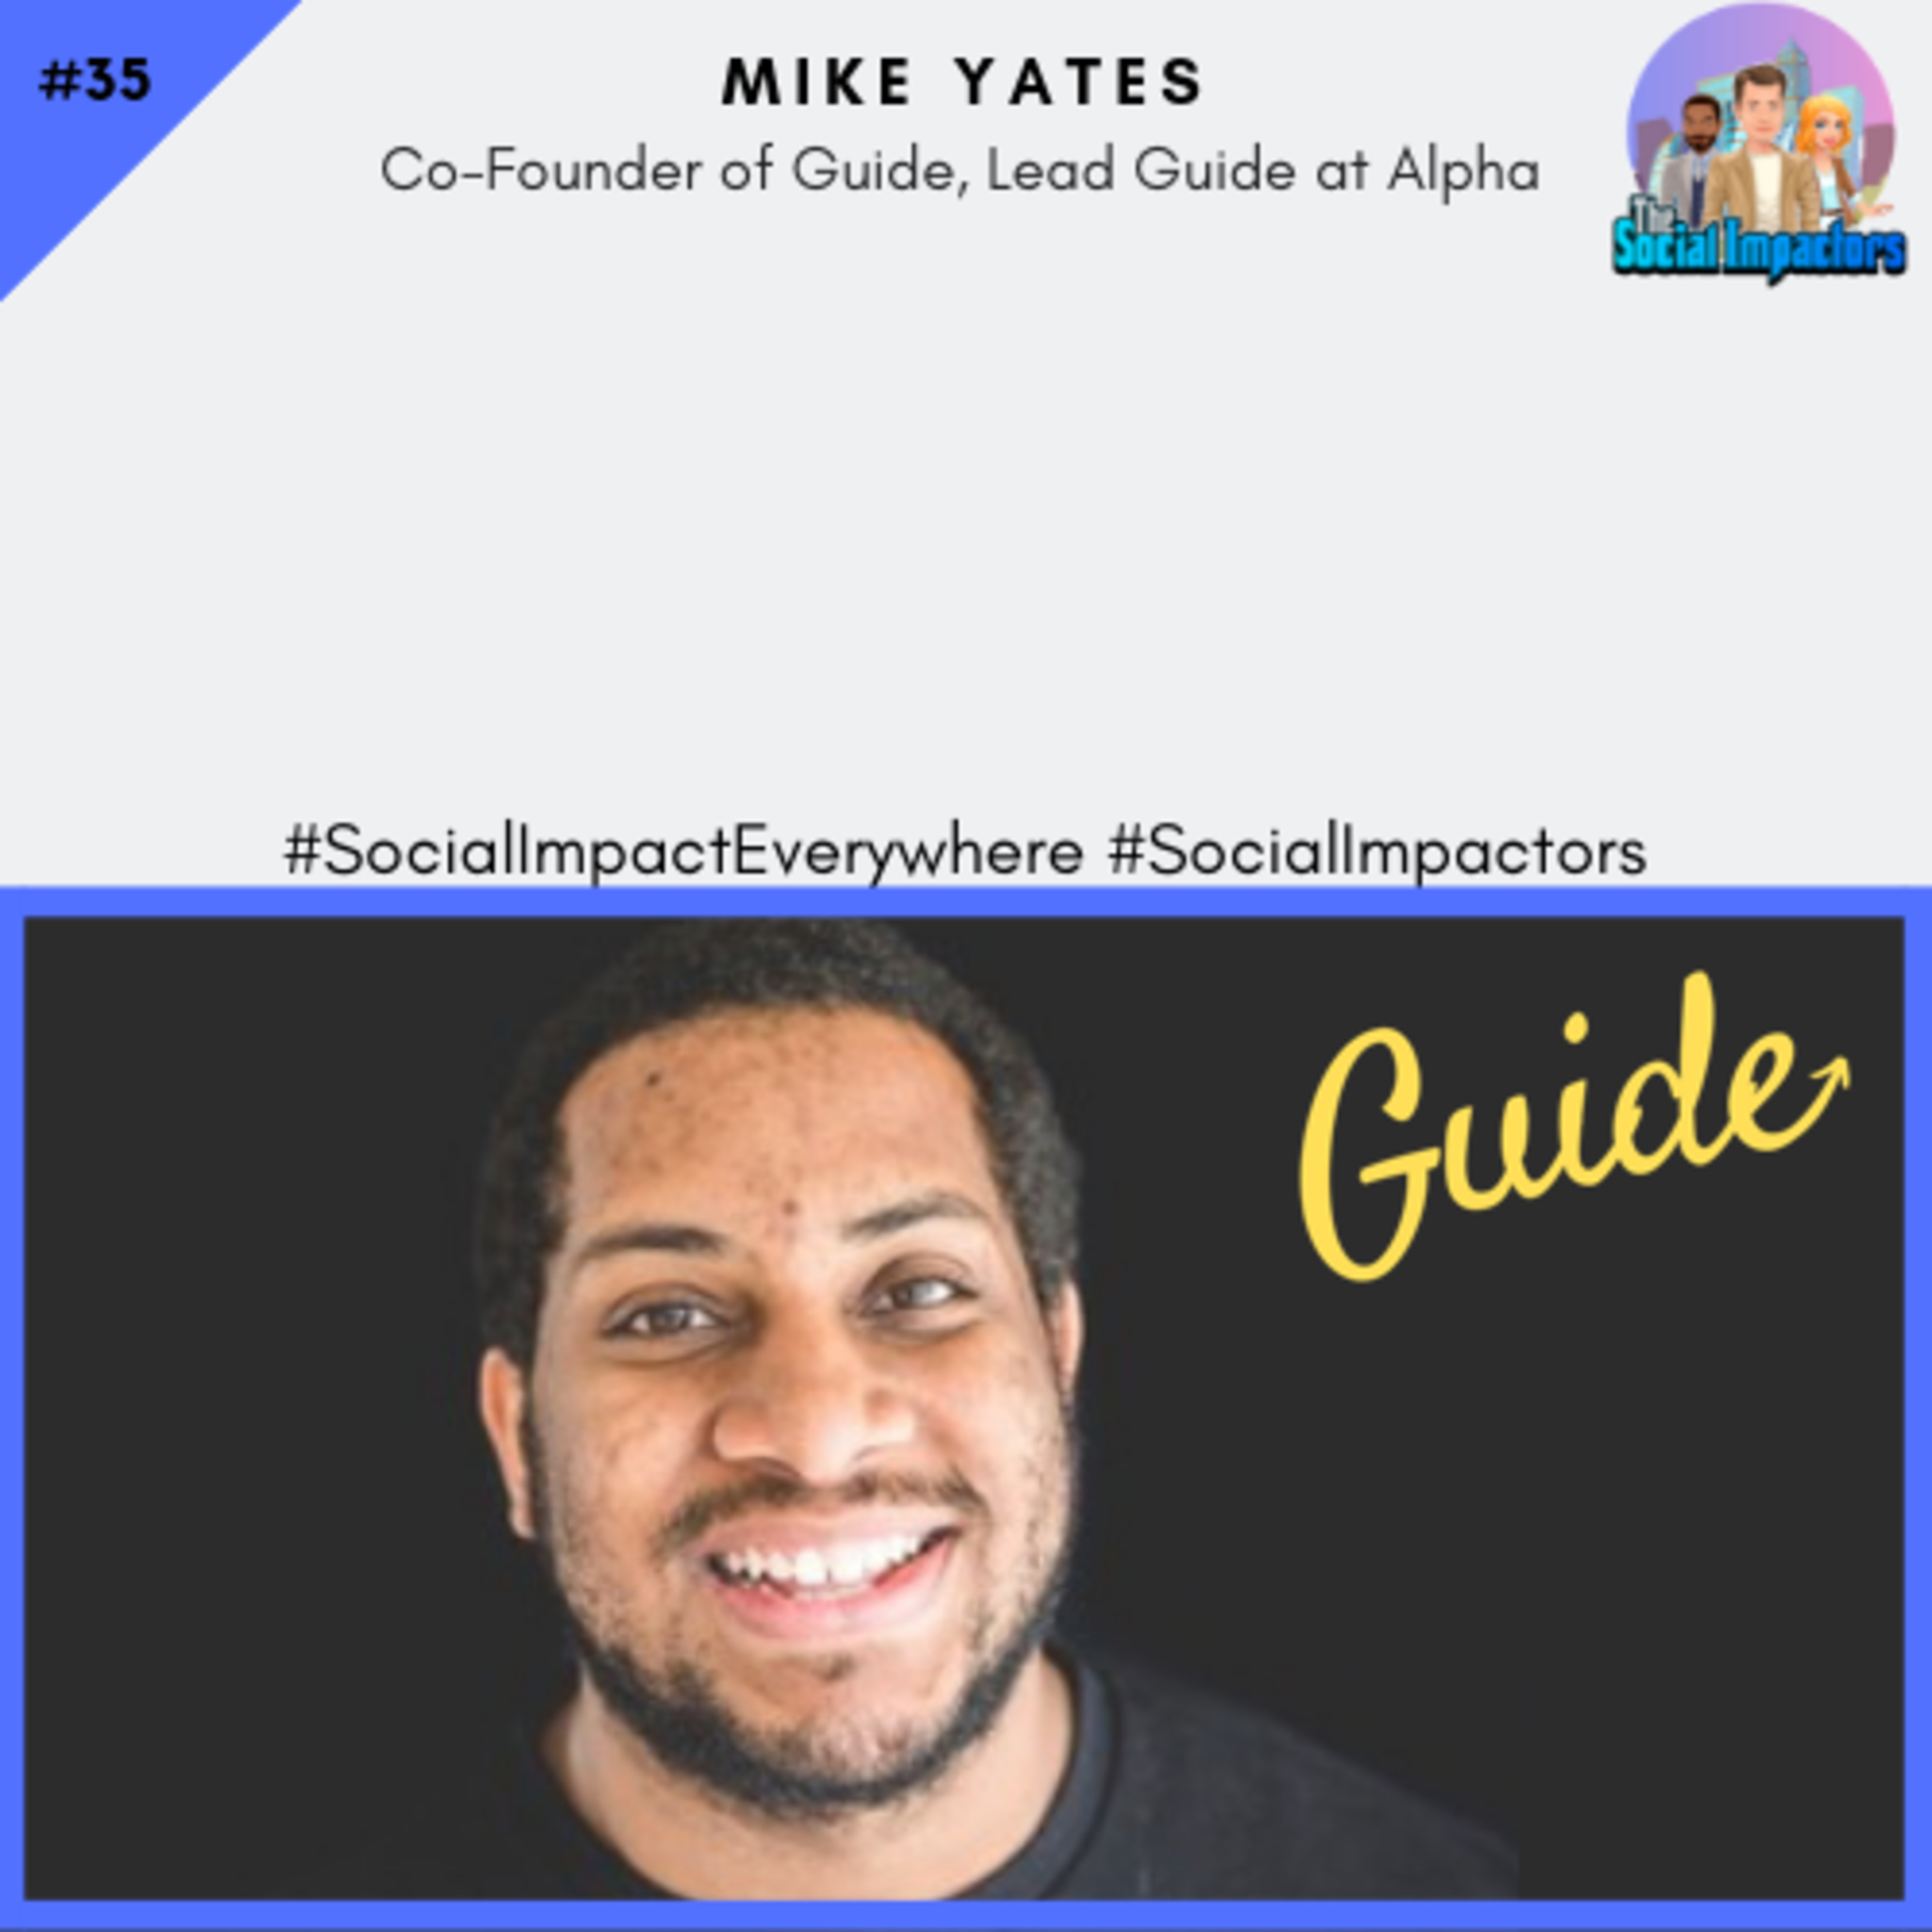 Innovating education, learning life skills through guidance & alt-education (Mike Yates of Guide)